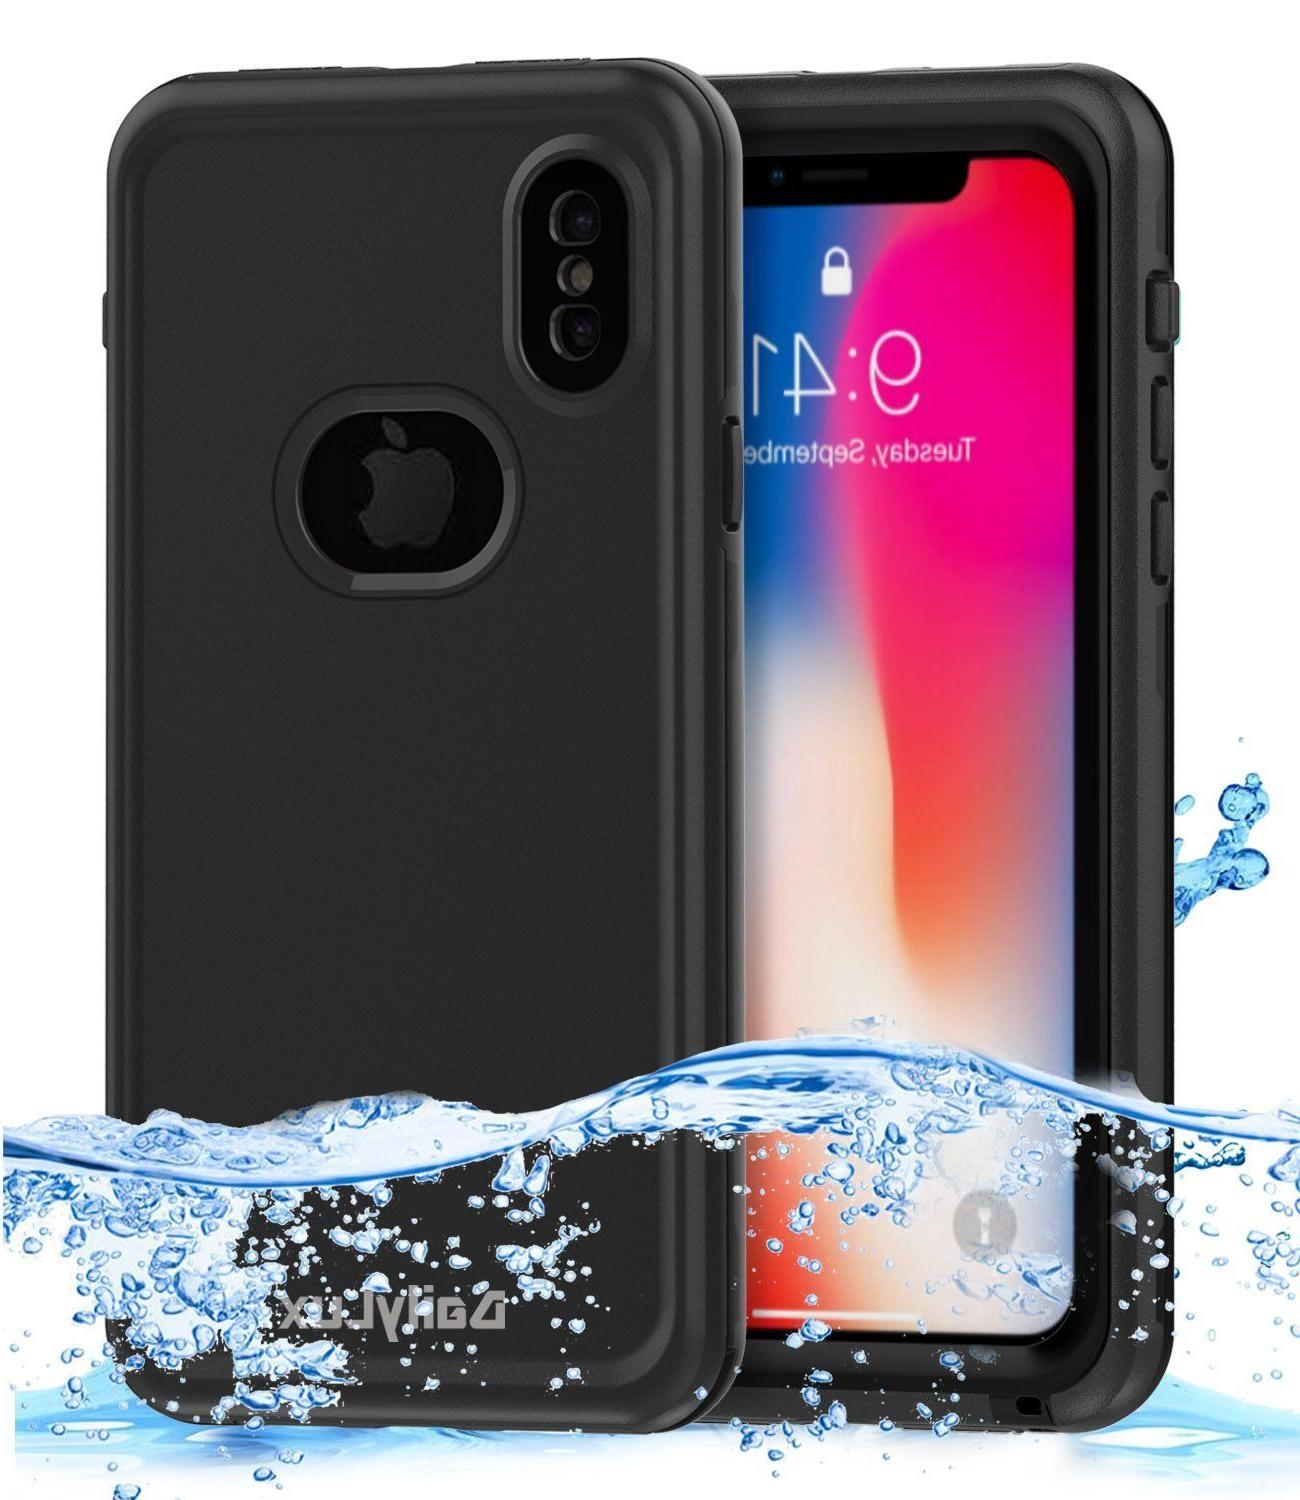 Apple iPhone X Case Waterproof Shockproof Underwater Cover w